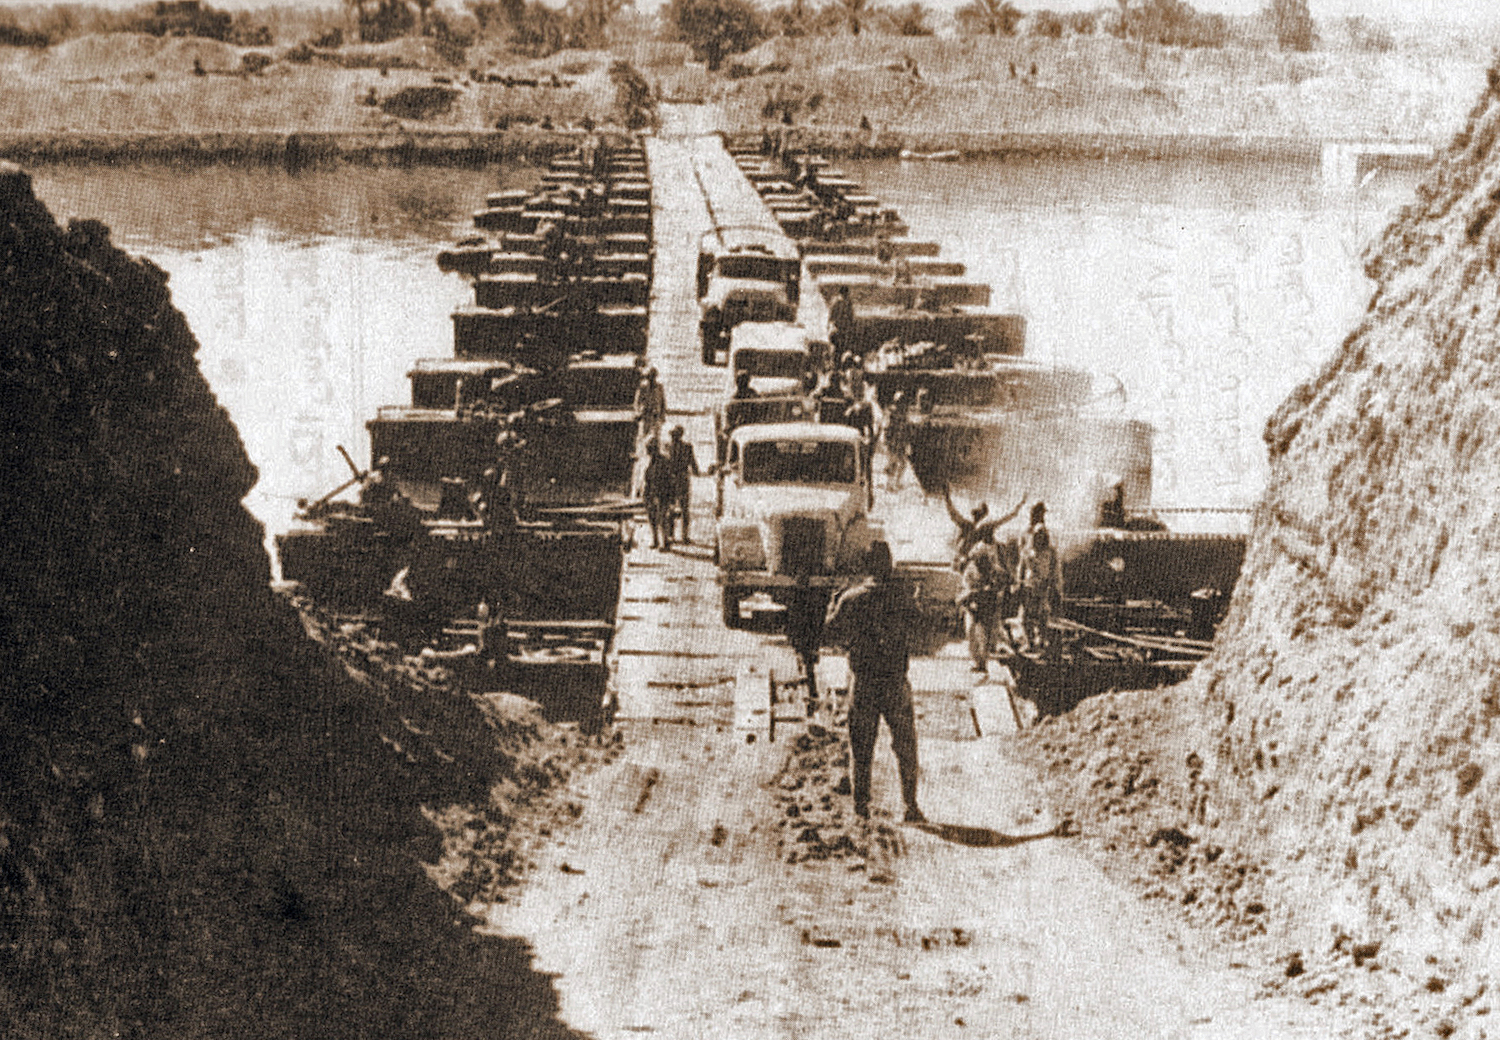 Egyptian military trucks cross a bridge laid over the Suez Canal on October 7, 1973 during the Yom Kippur War. CIA via Wikipedia.